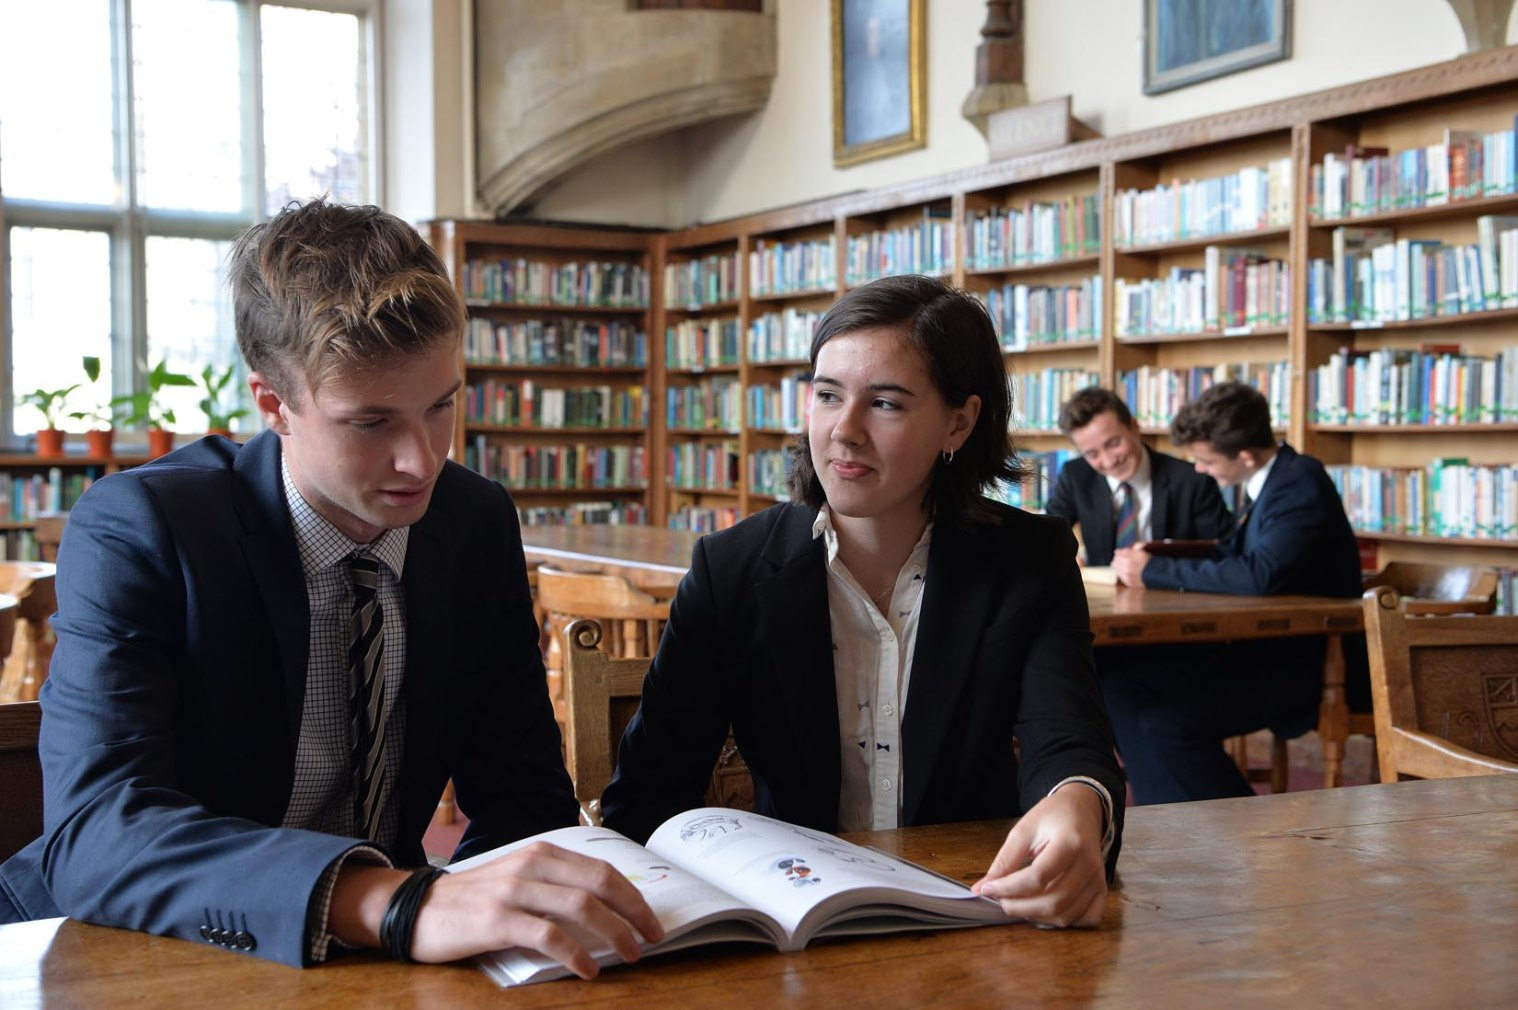 Education at Ampleforth